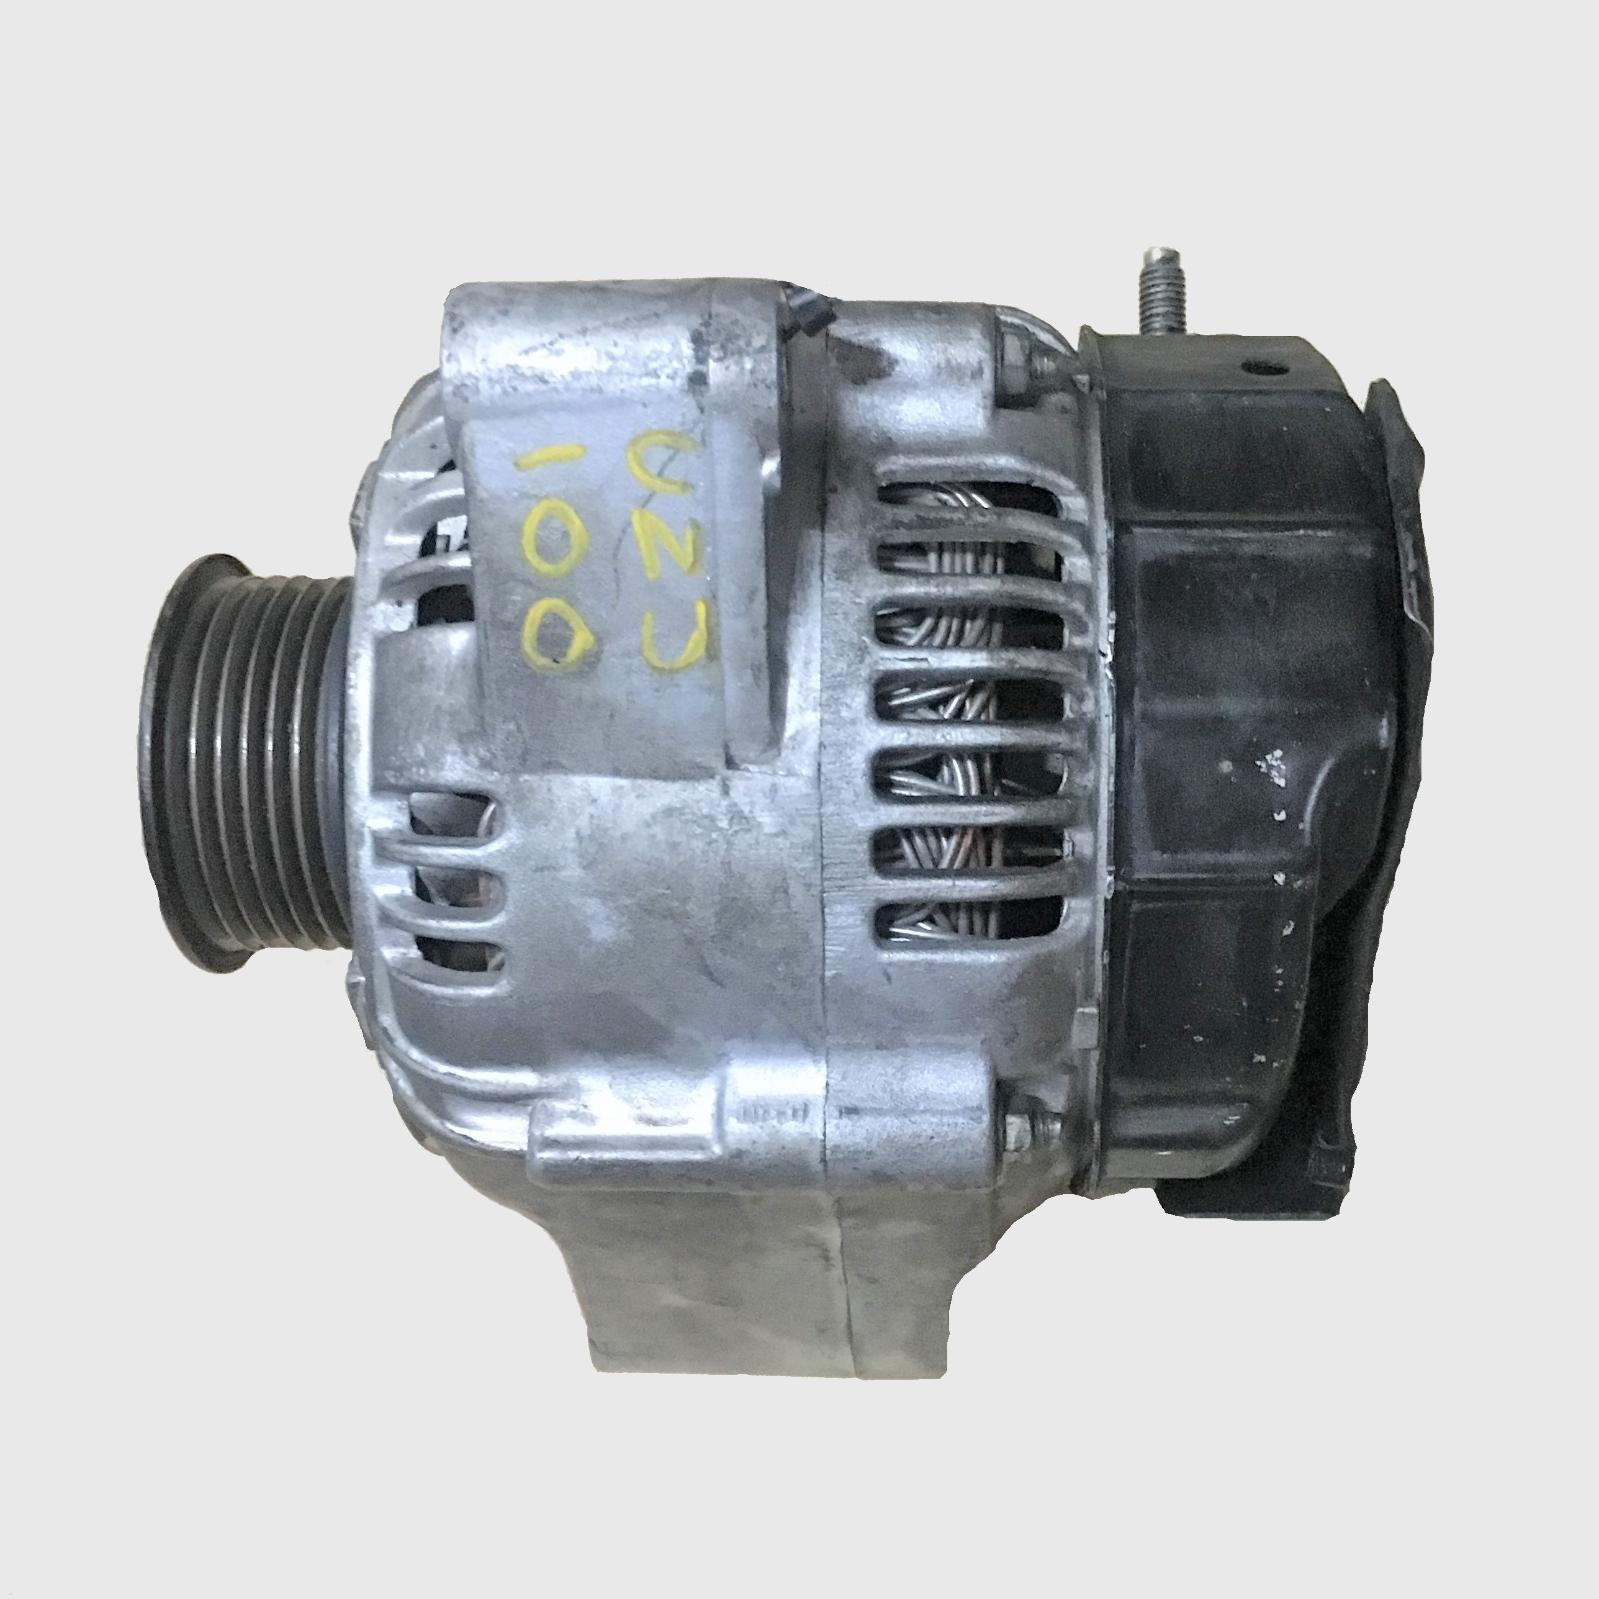 TOYOTA LANDCRUISER, Alternator, 100 SERIES, PETROL, 4.7, 2UZ (3 PIN TYPE), 01/98-07/04